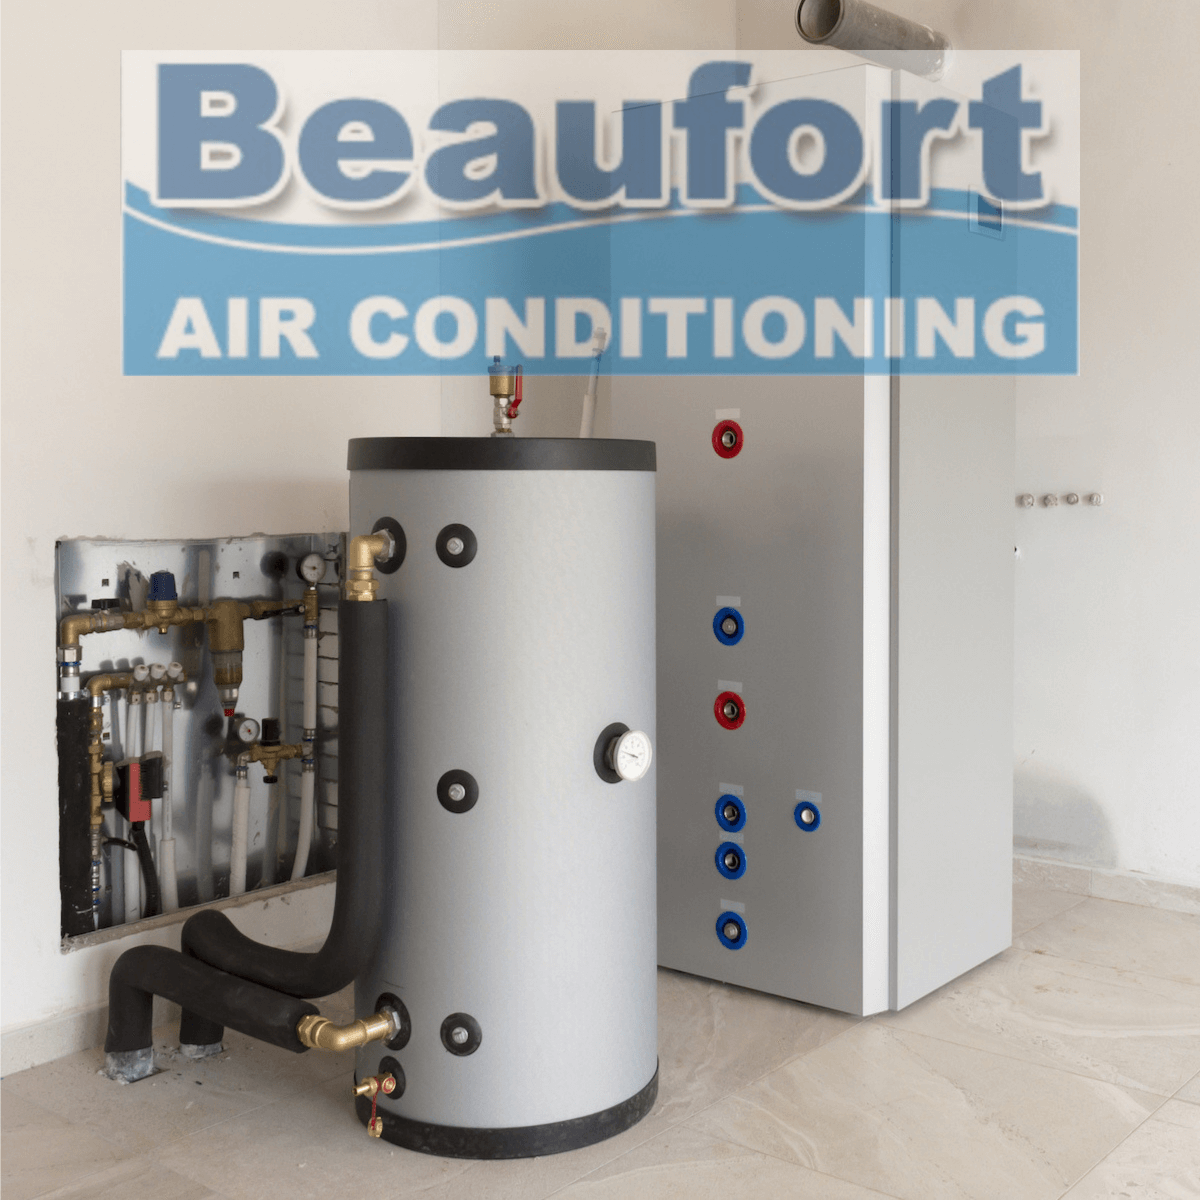 Heat pump service in Beaufort SC